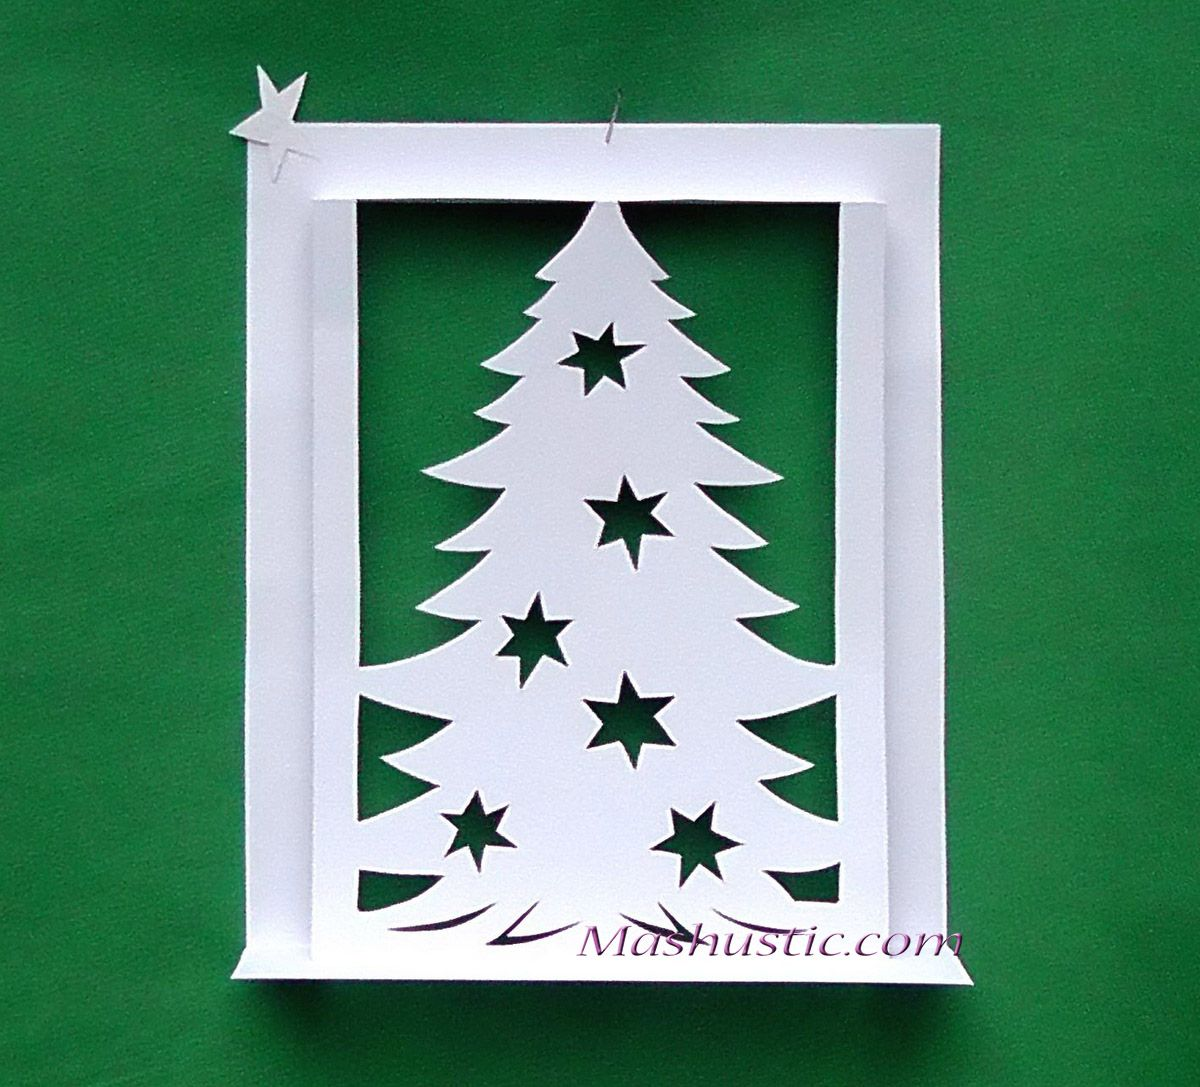 Christmas tree pop up card making | Mashustic.com | Pop up cards to ...